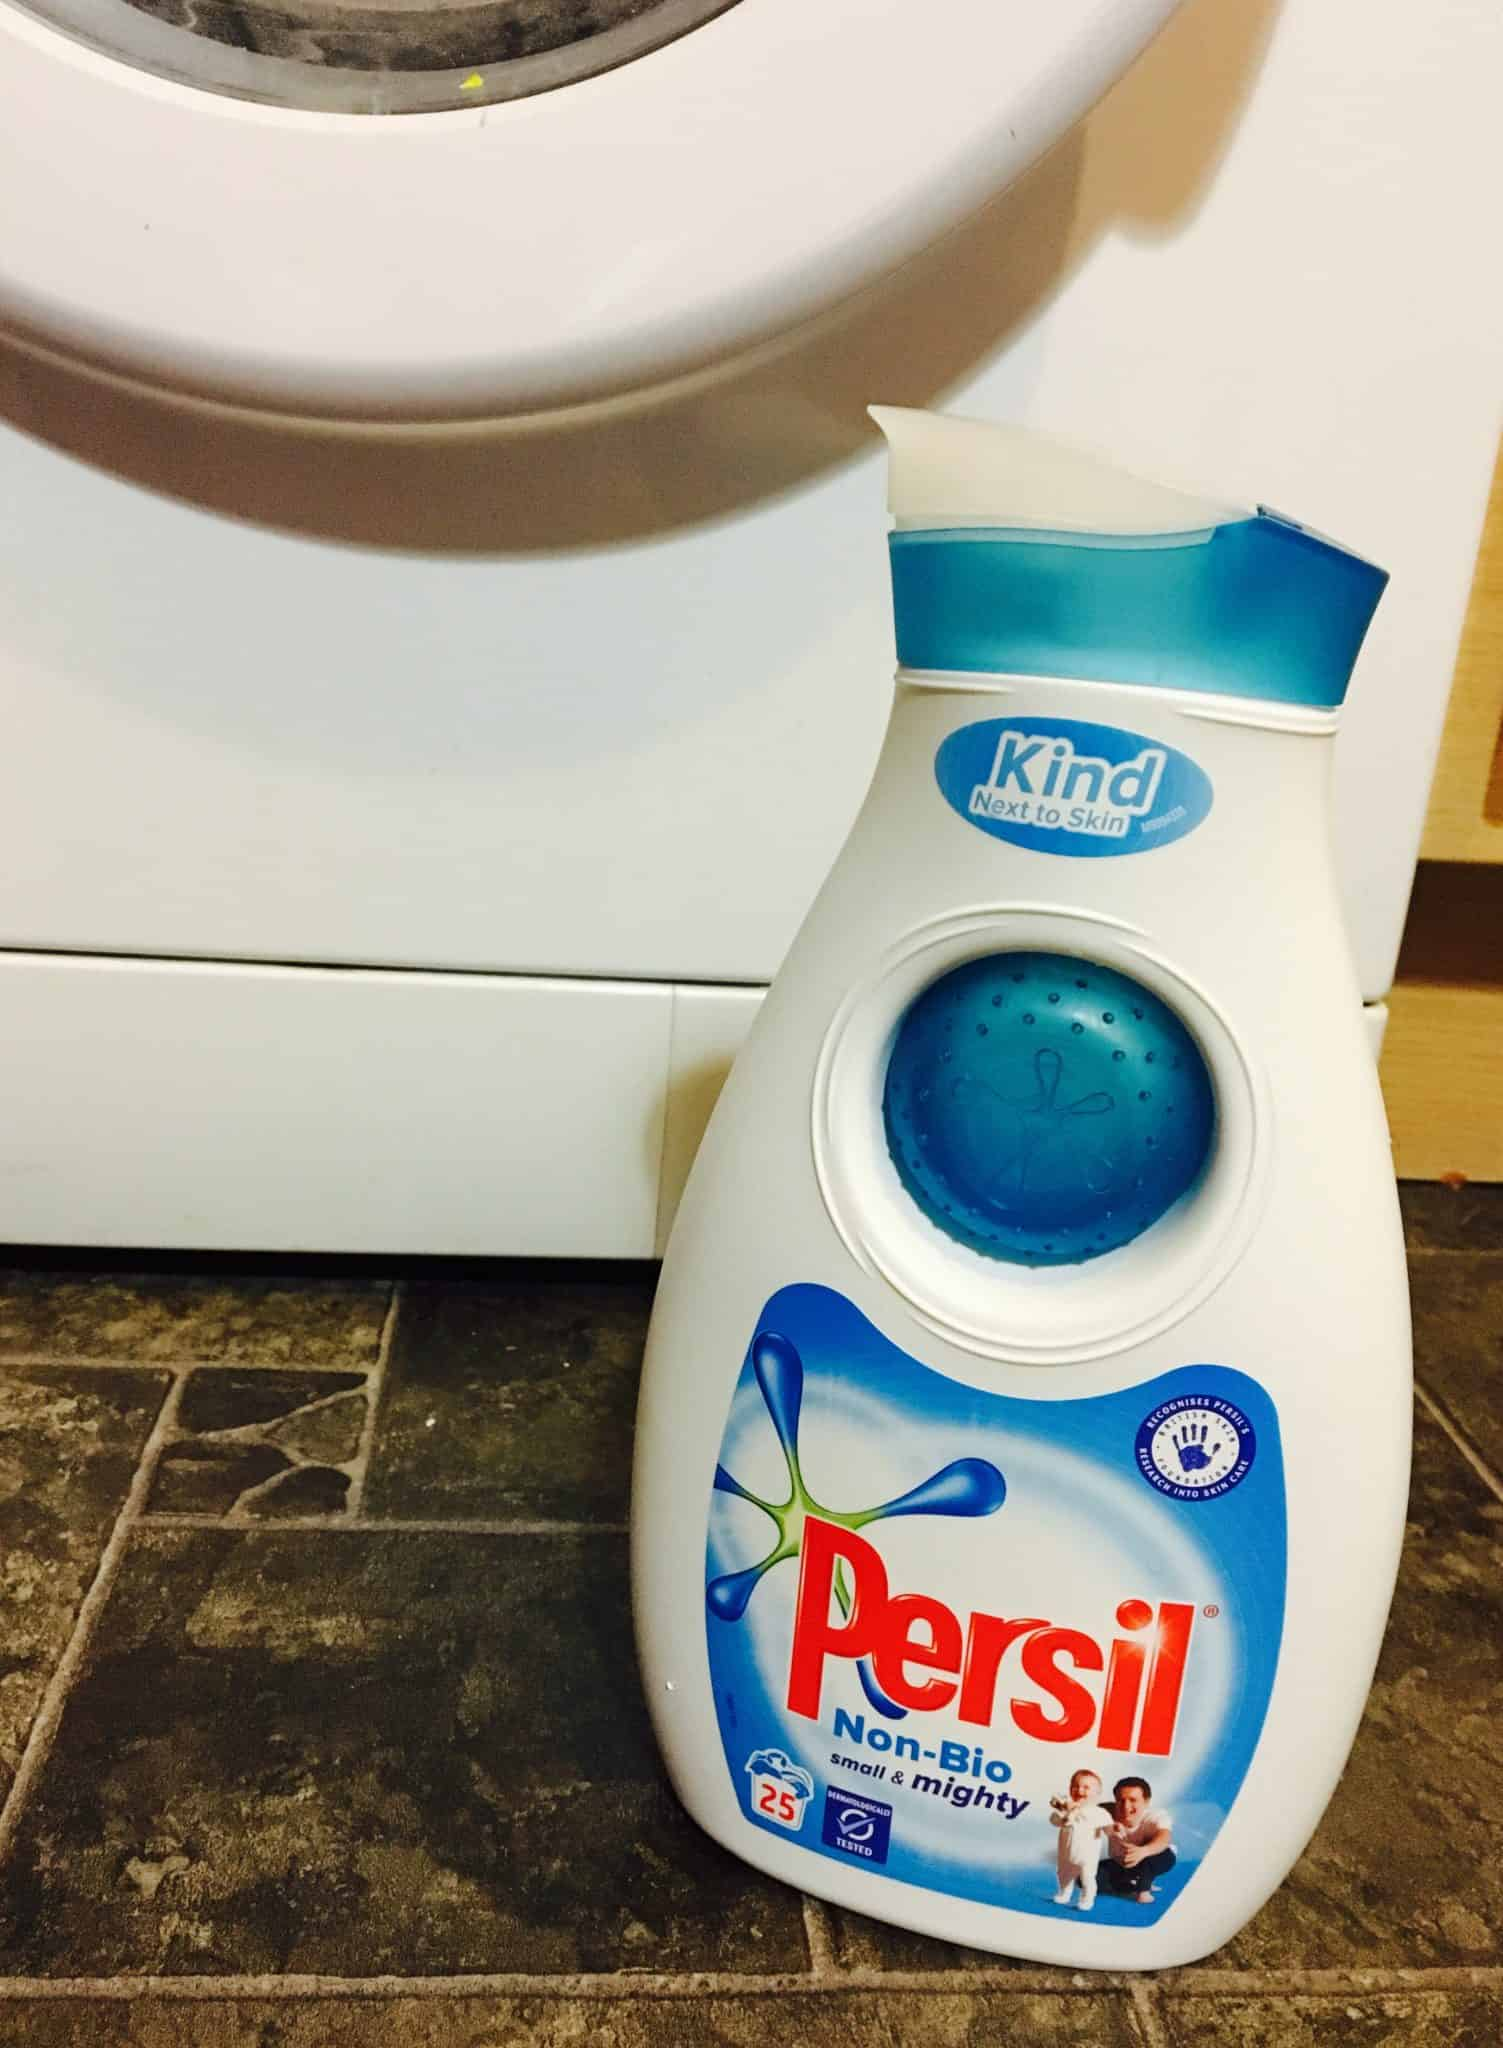 Persil non-bio by the washing machine